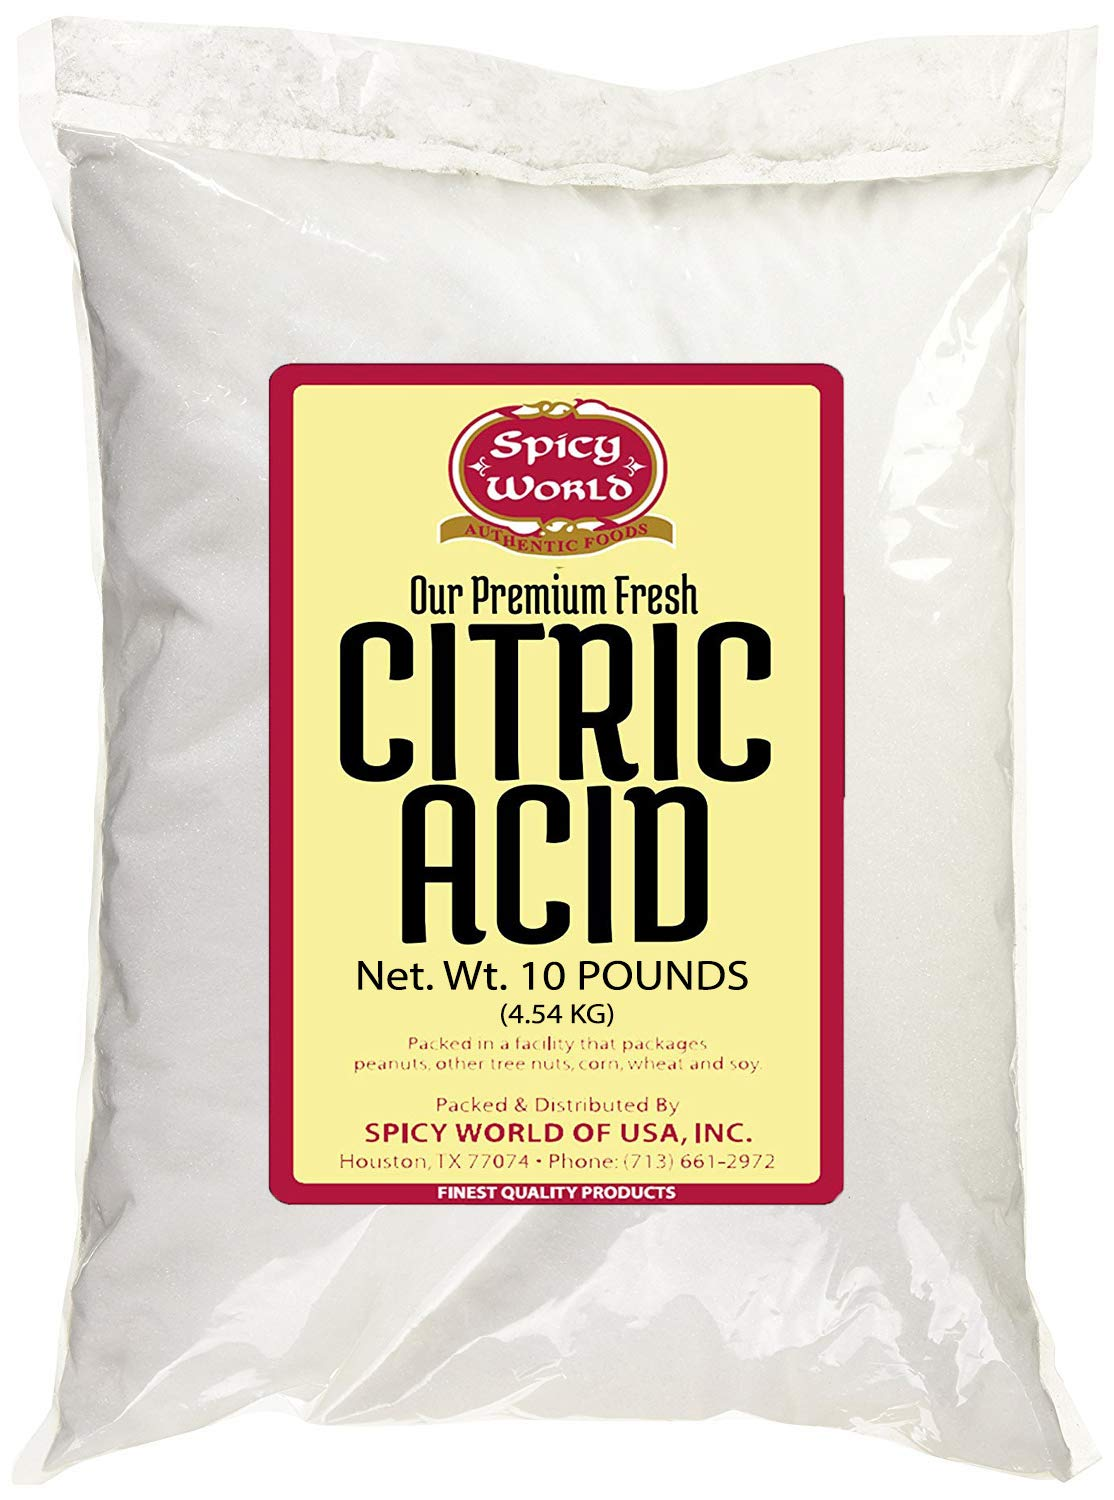 Pure Citric Acid, 10 Pound - Food Grade & Non-GMO- Natural Food Preservative, All Purpose Cleaning Agent, Beauty Ingredient- by Spicy World